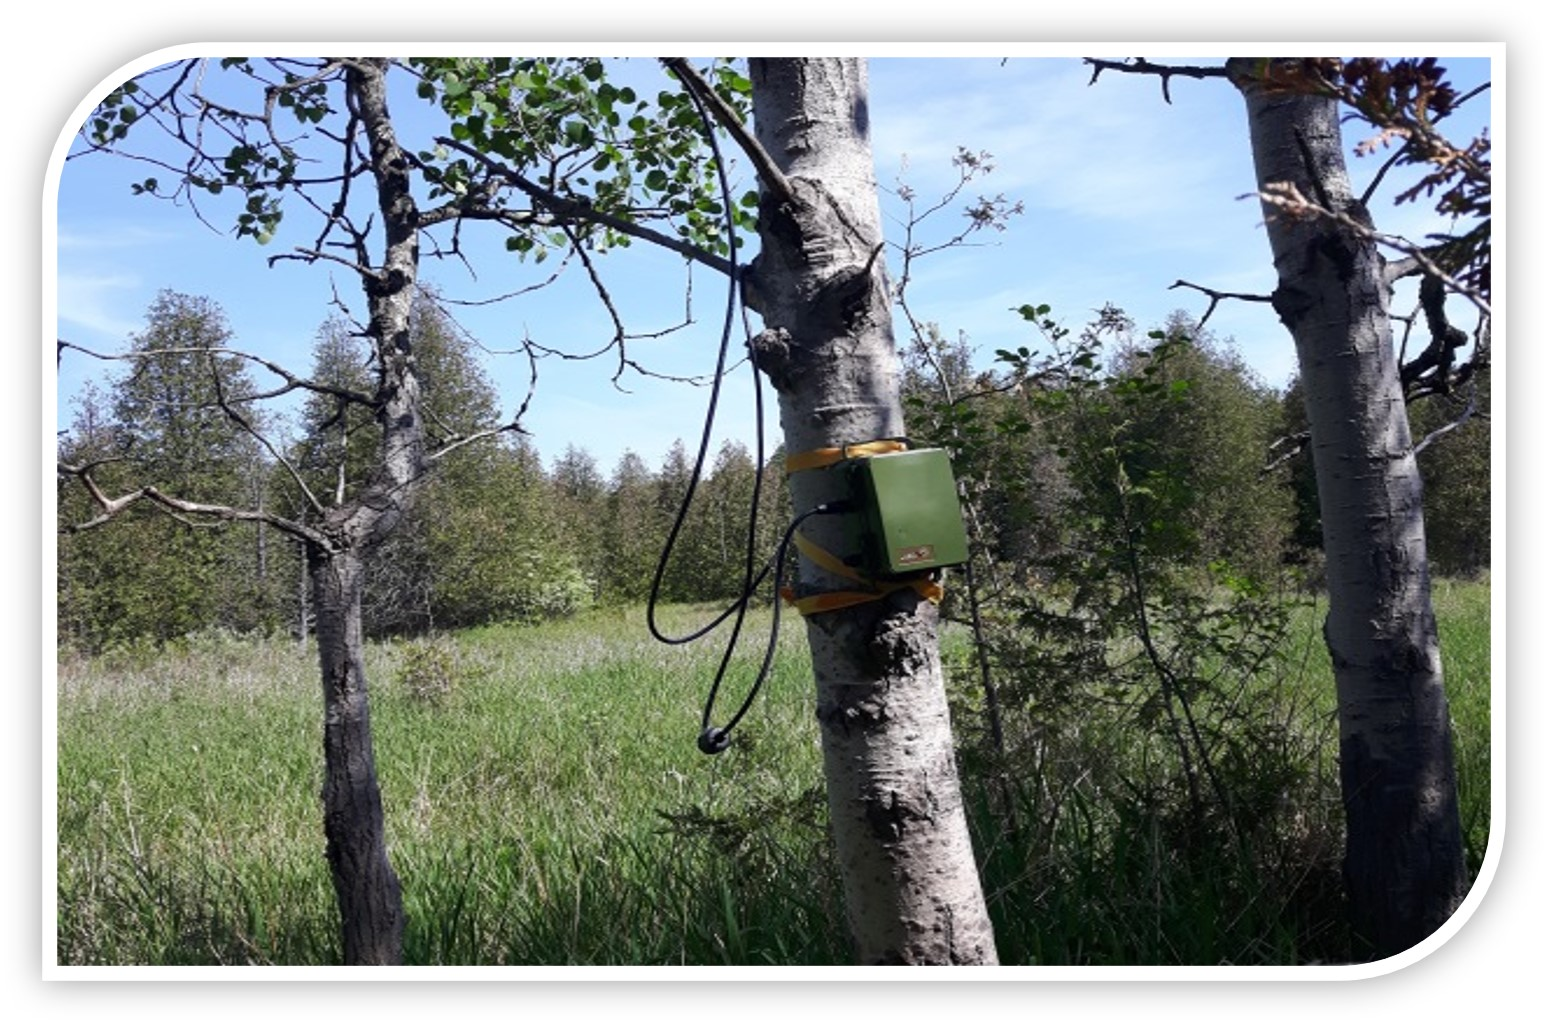 Bat Acoustical Monitoring equipment attached to tree.